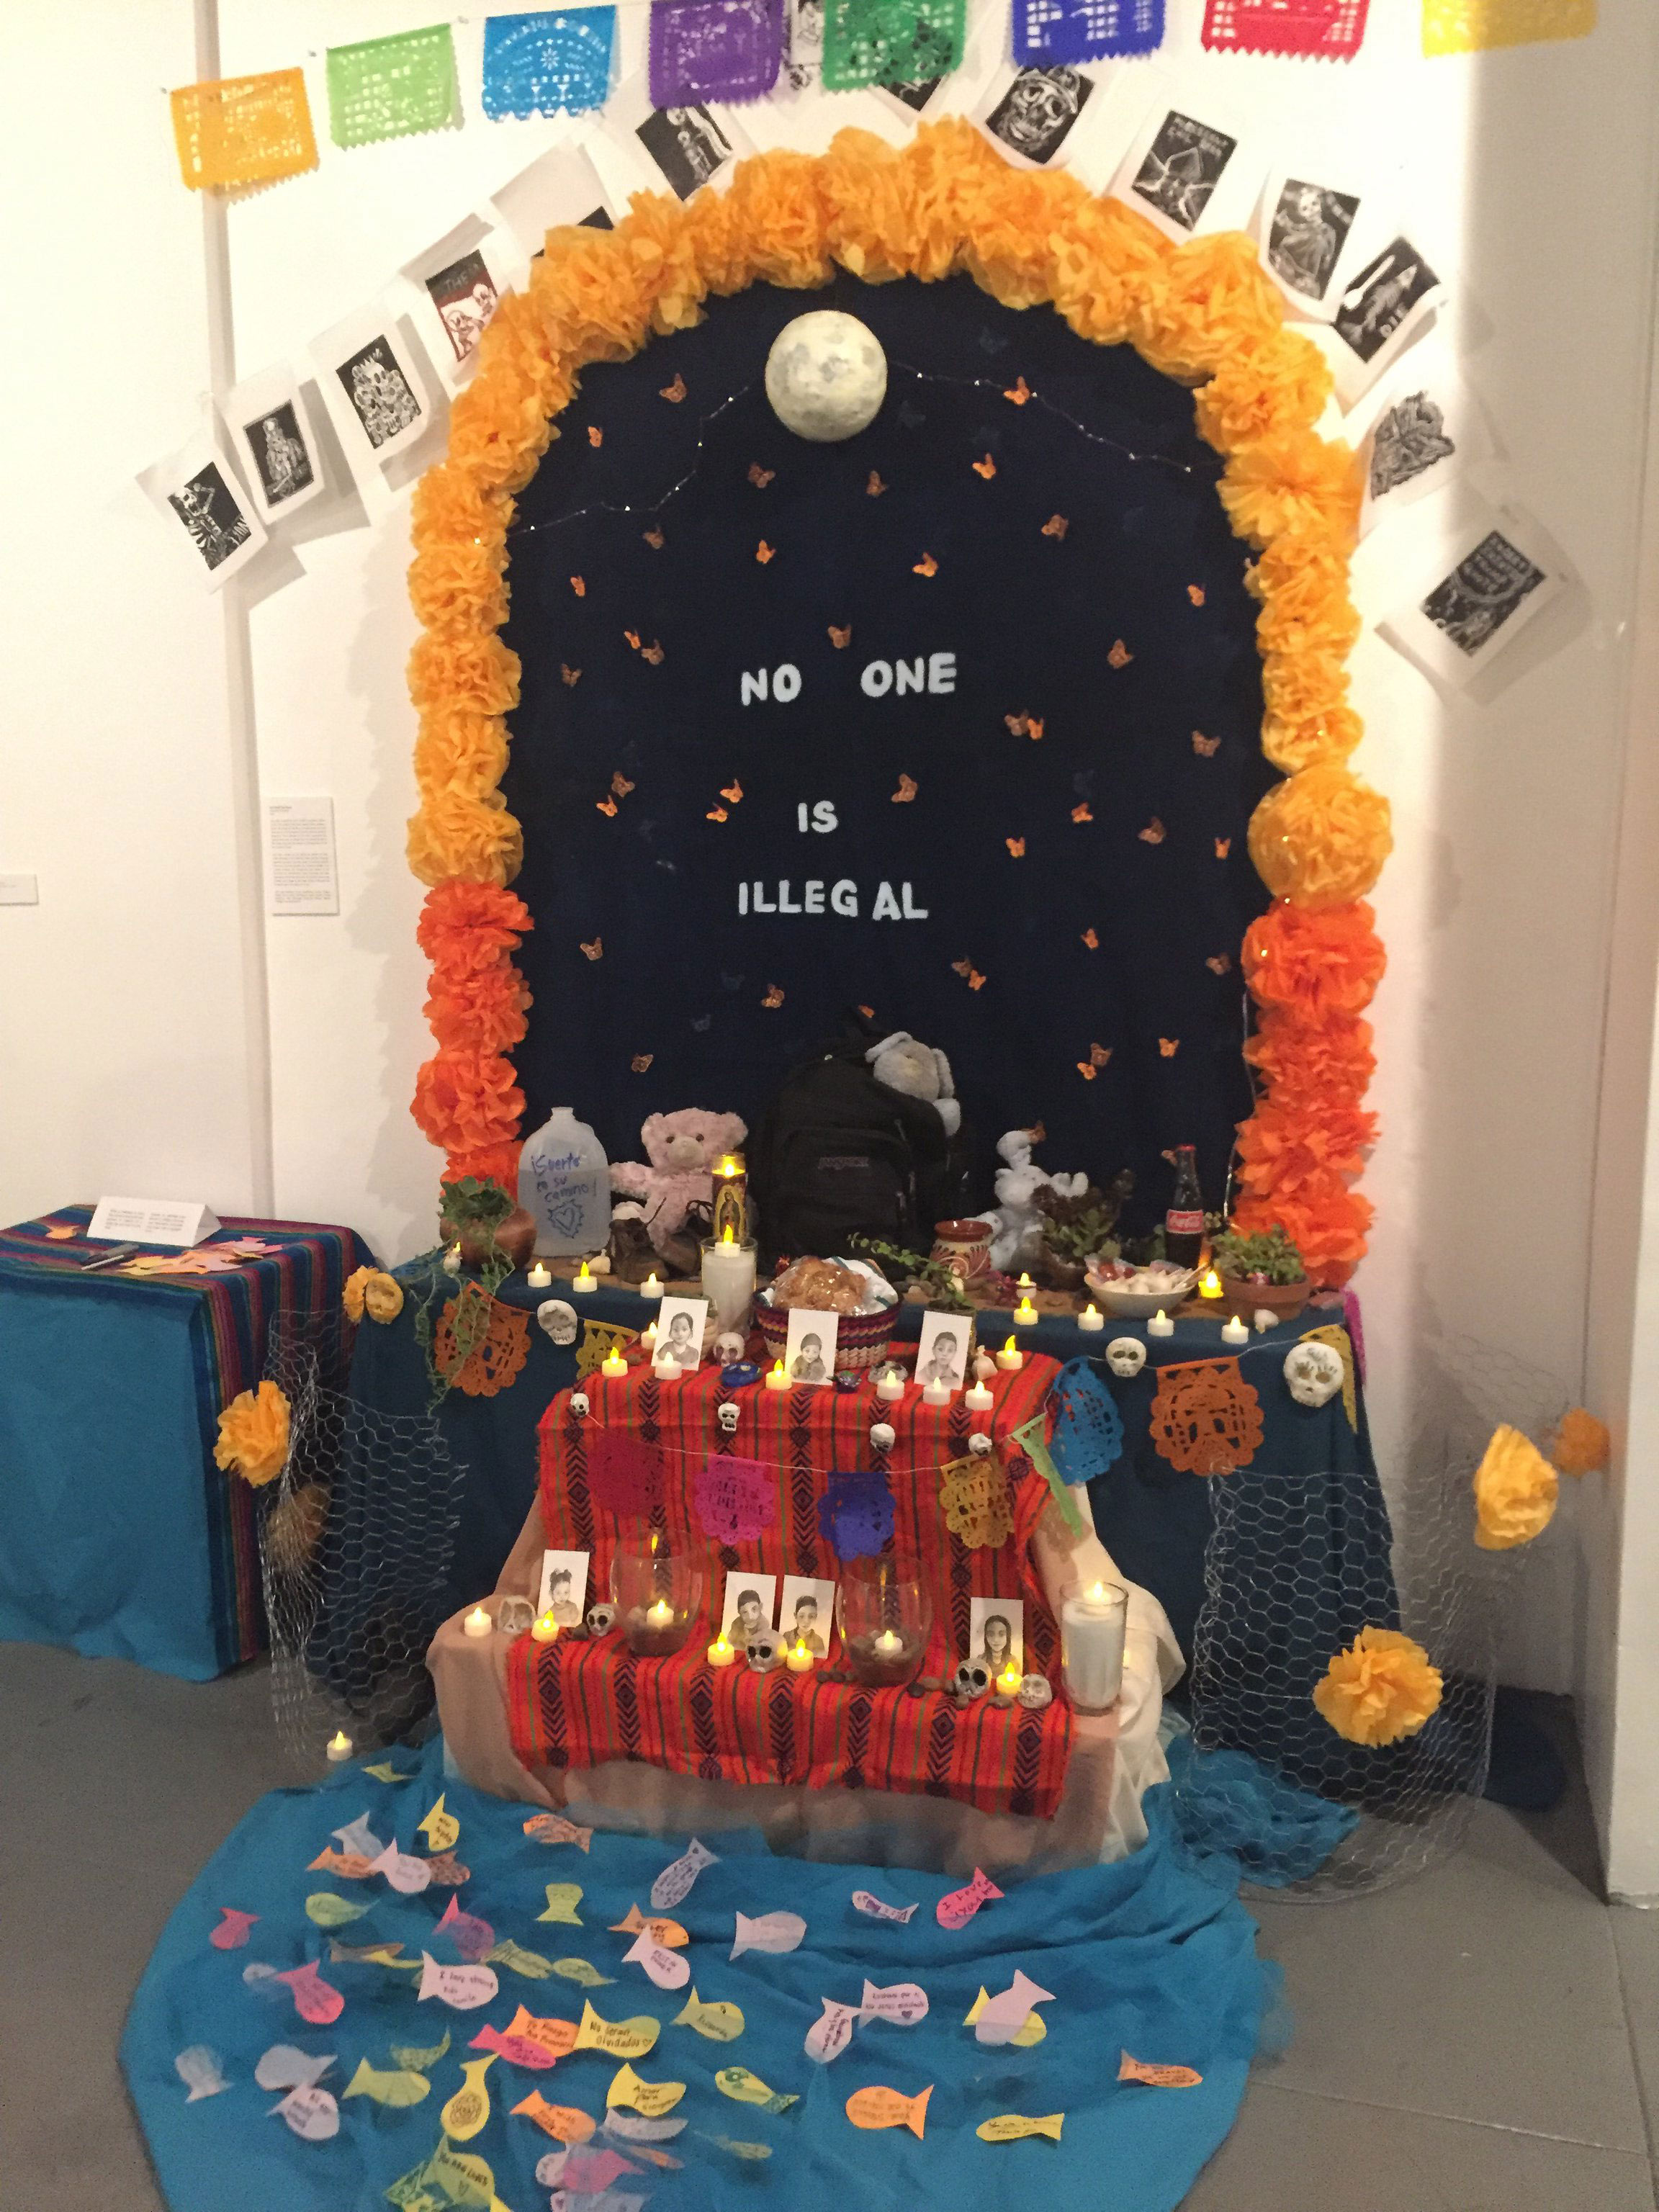 An ornately decorated alter celebrates Día de Los Muertos at Self Help Graphics on October 23, 2019.